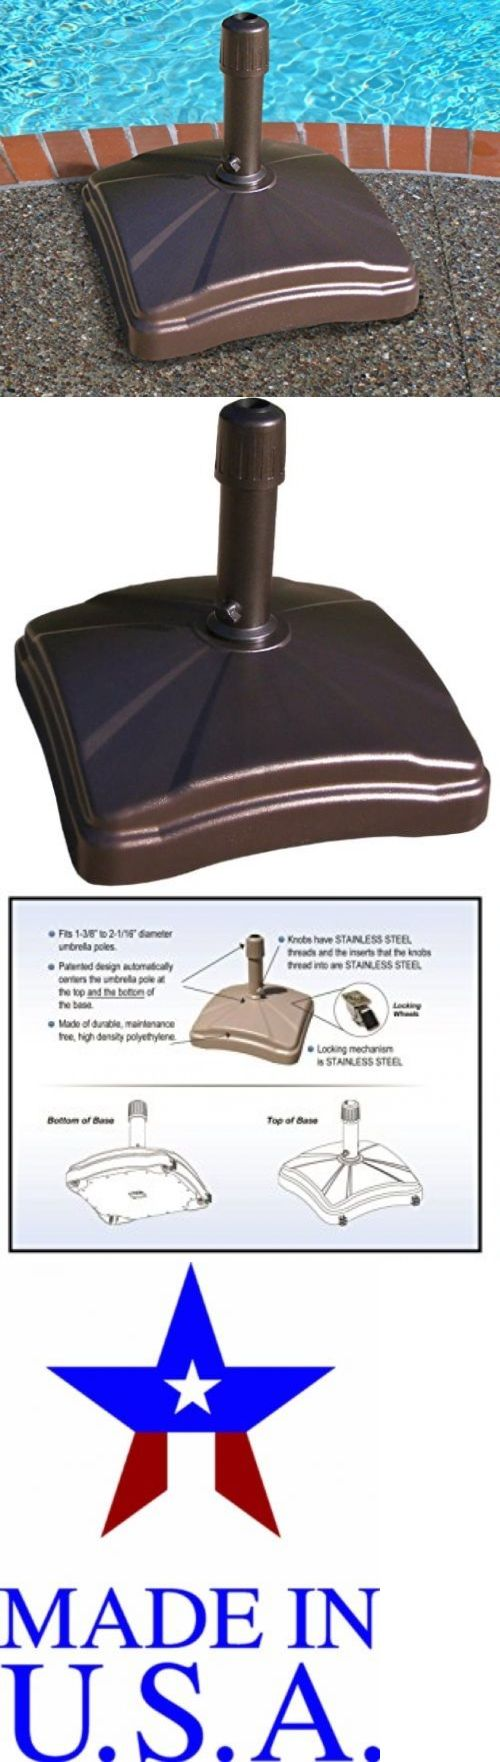 Umbrella Stands 180999: Patio Umbrella Stand Base Outdoor Market Heavy Duty Rolling Holder Deck Sand New -> BUY IT NOW ONLY: $190.89 on eBay!